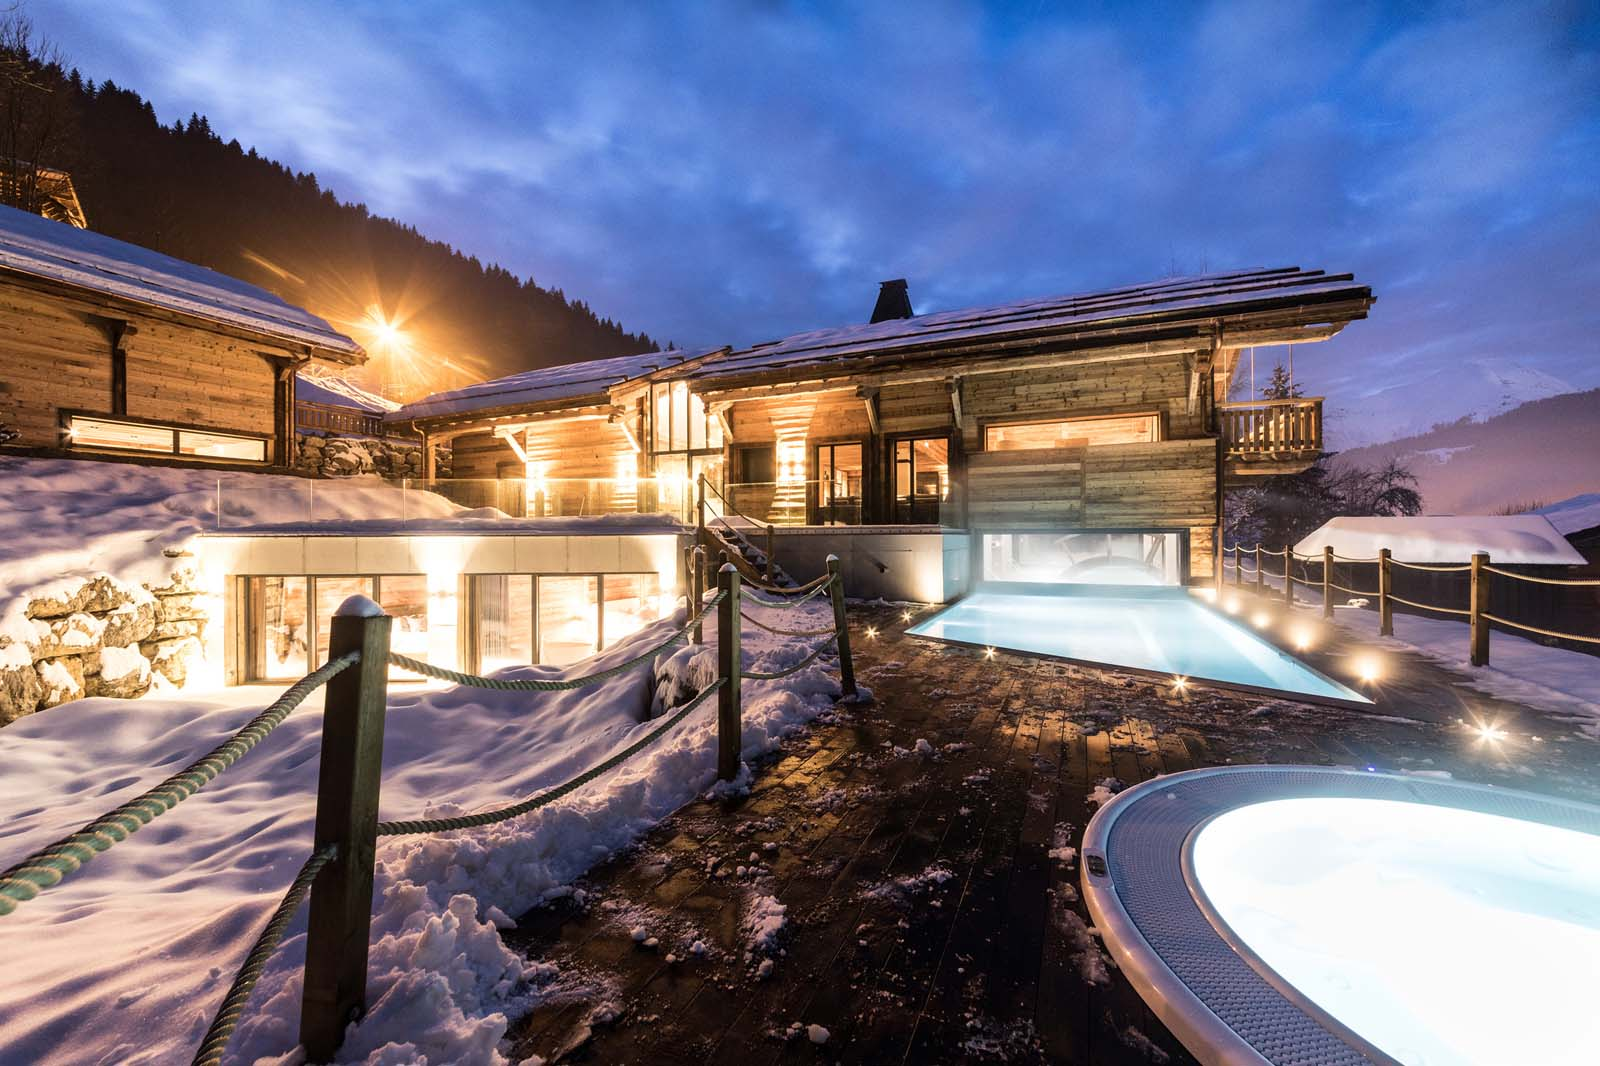 Chalet joux plane in morzine by skiboutique for Boutique hotel ski